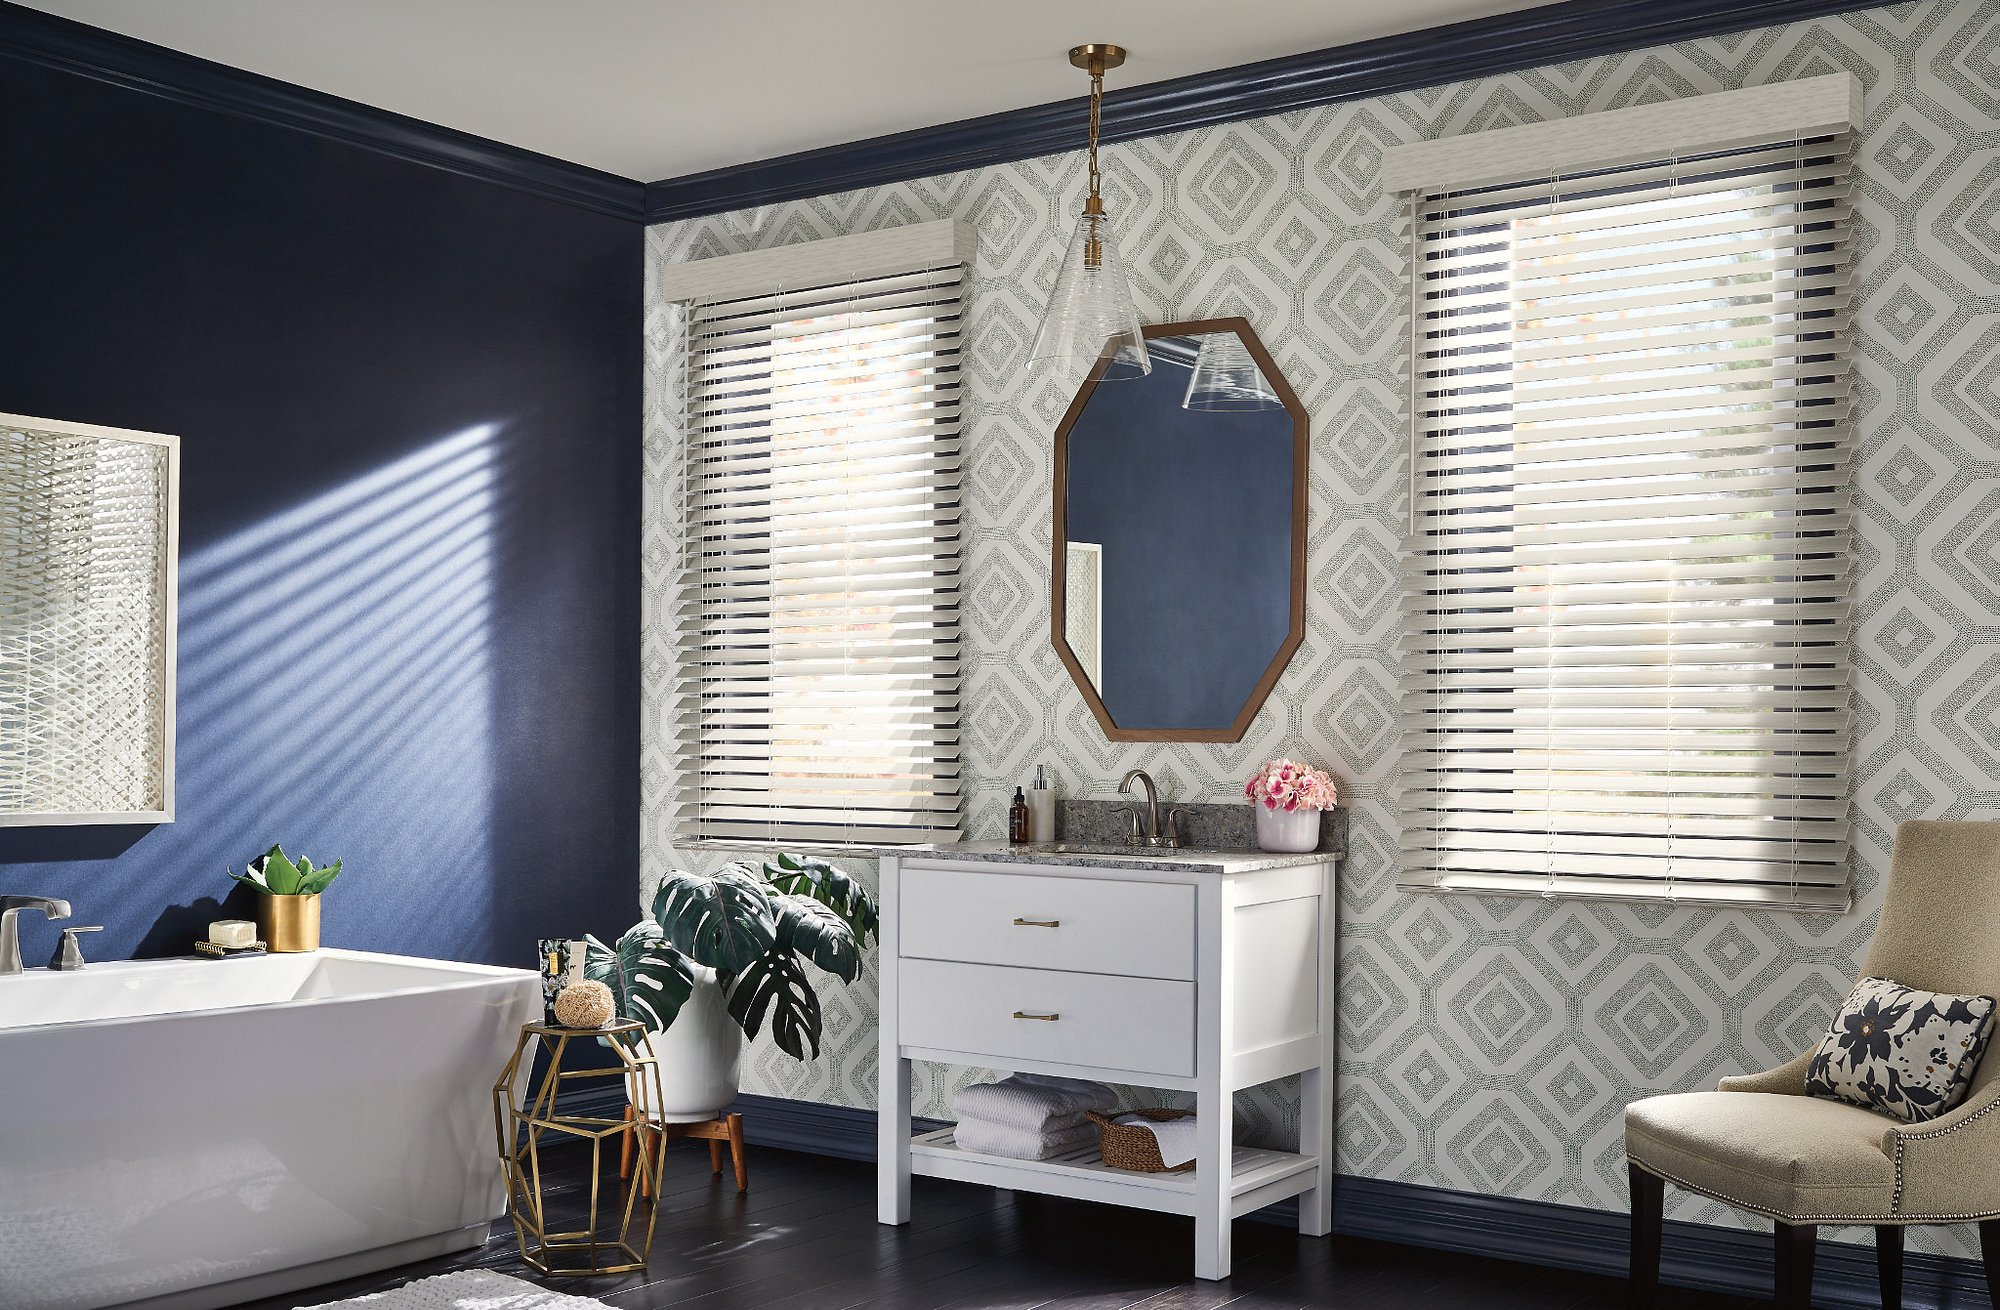 faux blinds on windows on wall with wallpaper and mirror